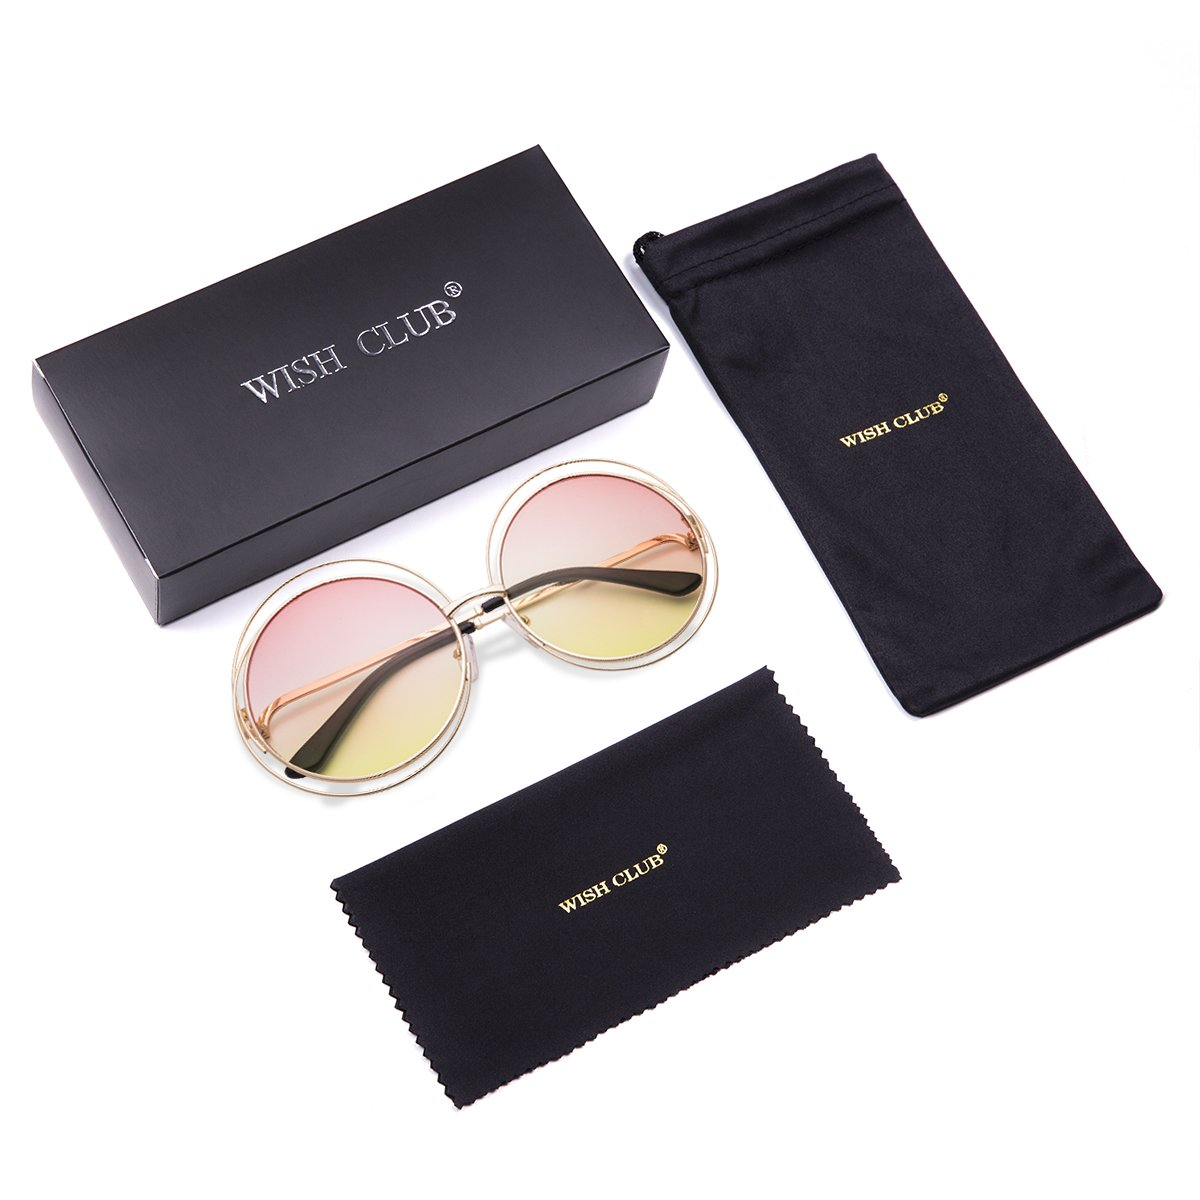 WISH CLUB Oversized Round Fashion Sunglasses for Women Flat Lens Rimmed Eyewear for Girls Womens UV Transparent Glasses (Pink - Yellow) 3018